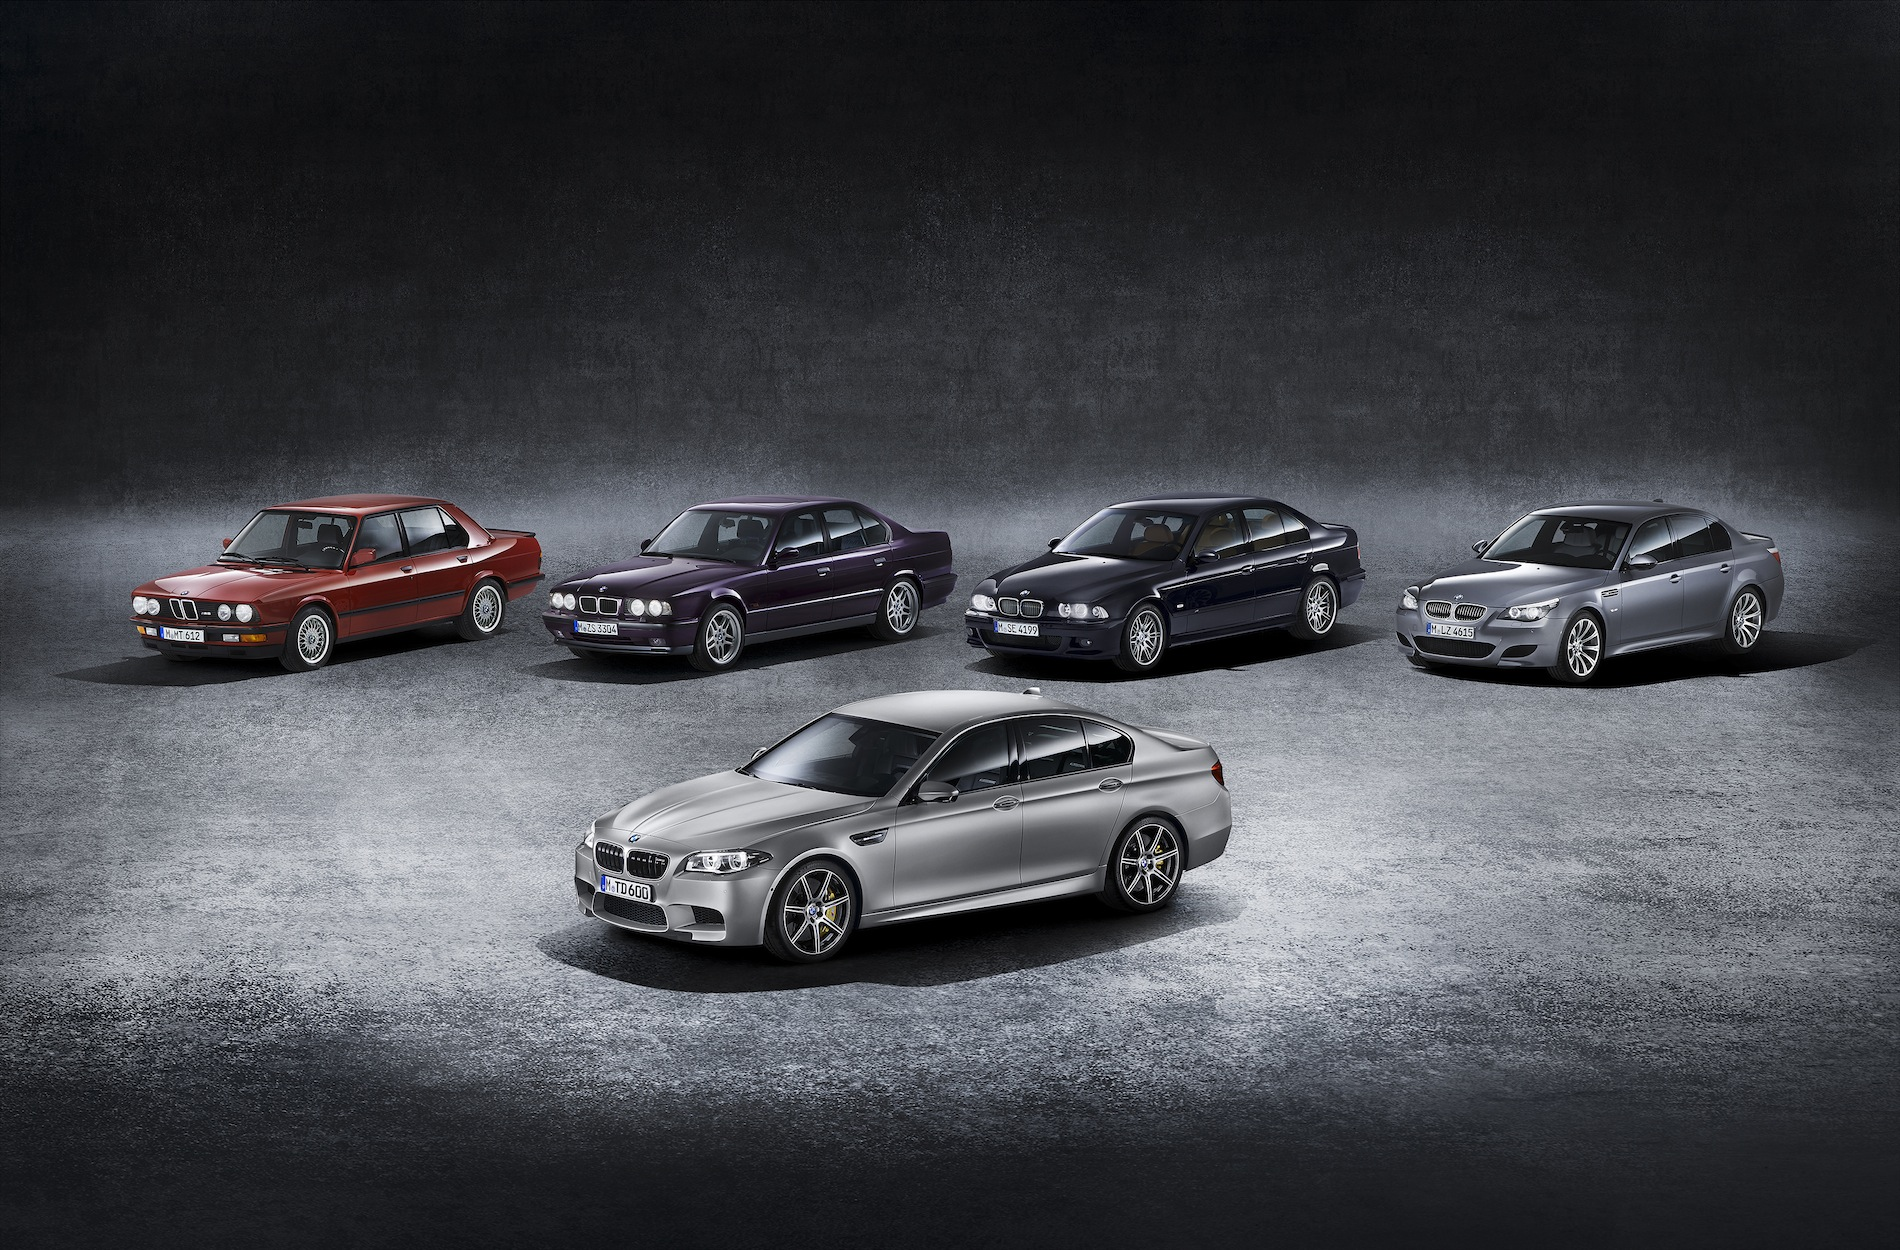 Bmw Palm Springs >> 30th Anniversary BMW M5 Edition: 600 HP / 516 LB-FT in Frozen Dark Silver. $138,275